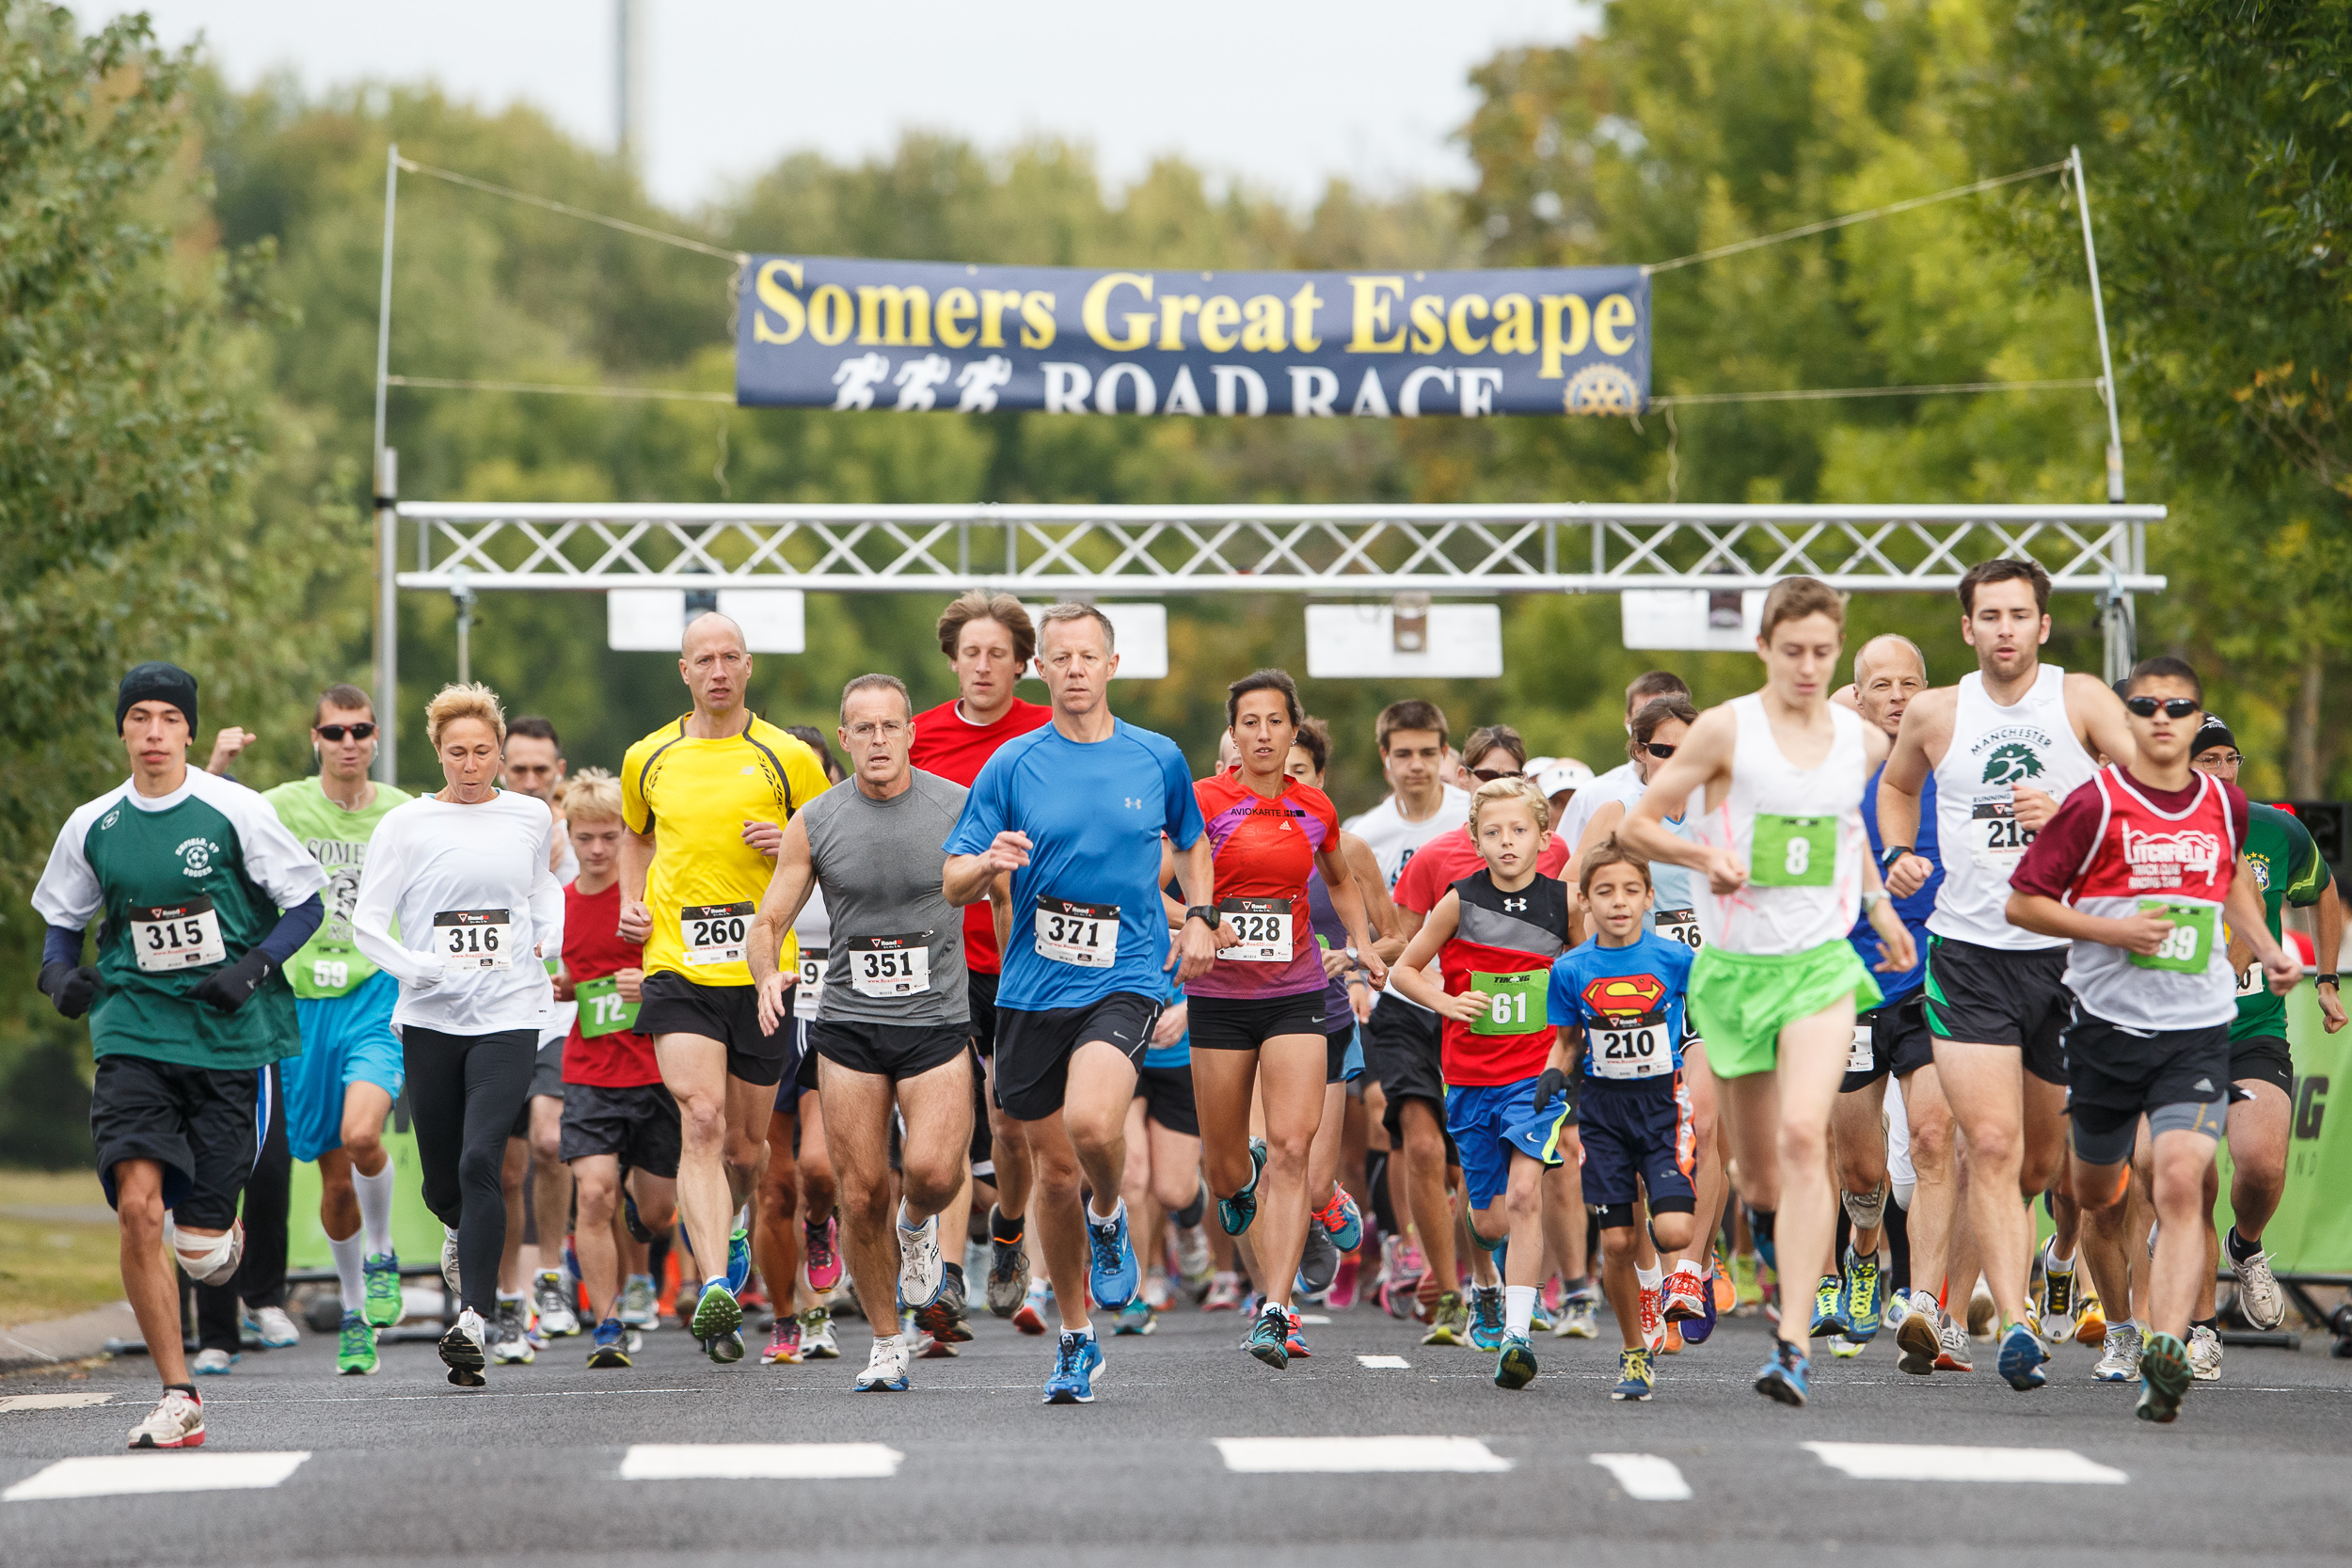 2014 Somers Great Escape Road Race